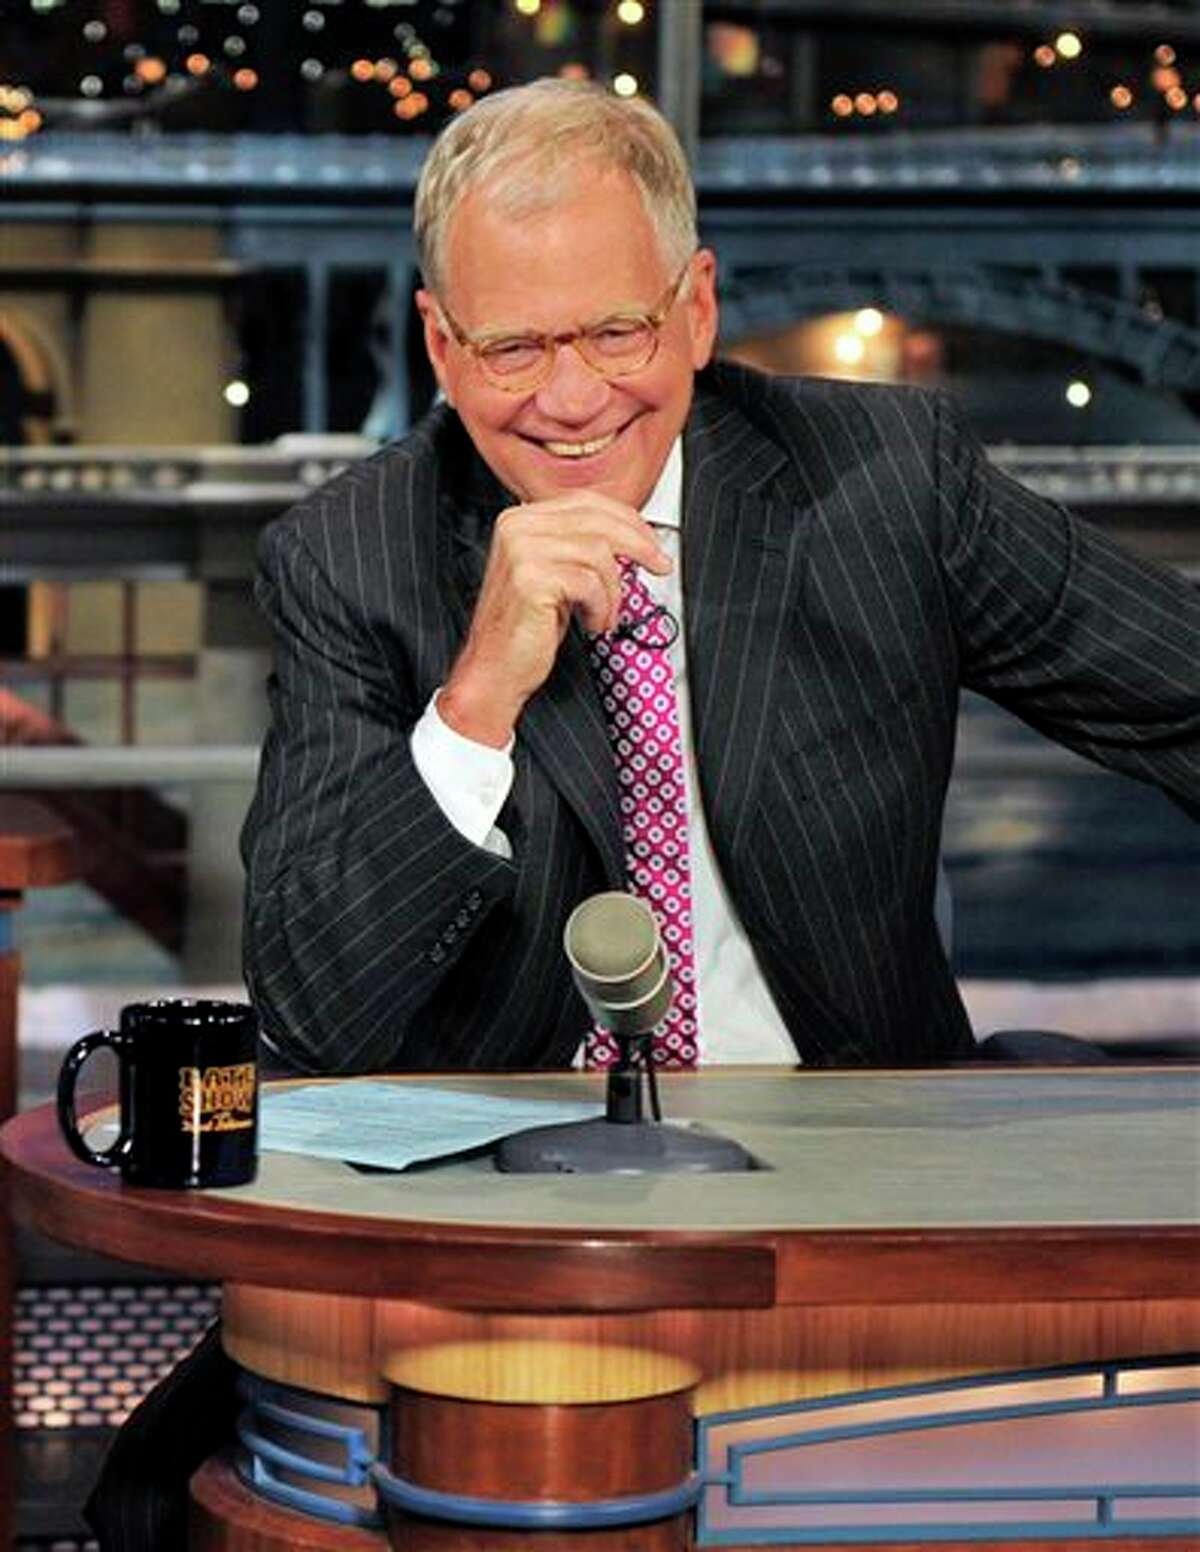 FILE - In this April 23, 2012 file photo provided by CBS, host David Letterman appears during a taping of his show